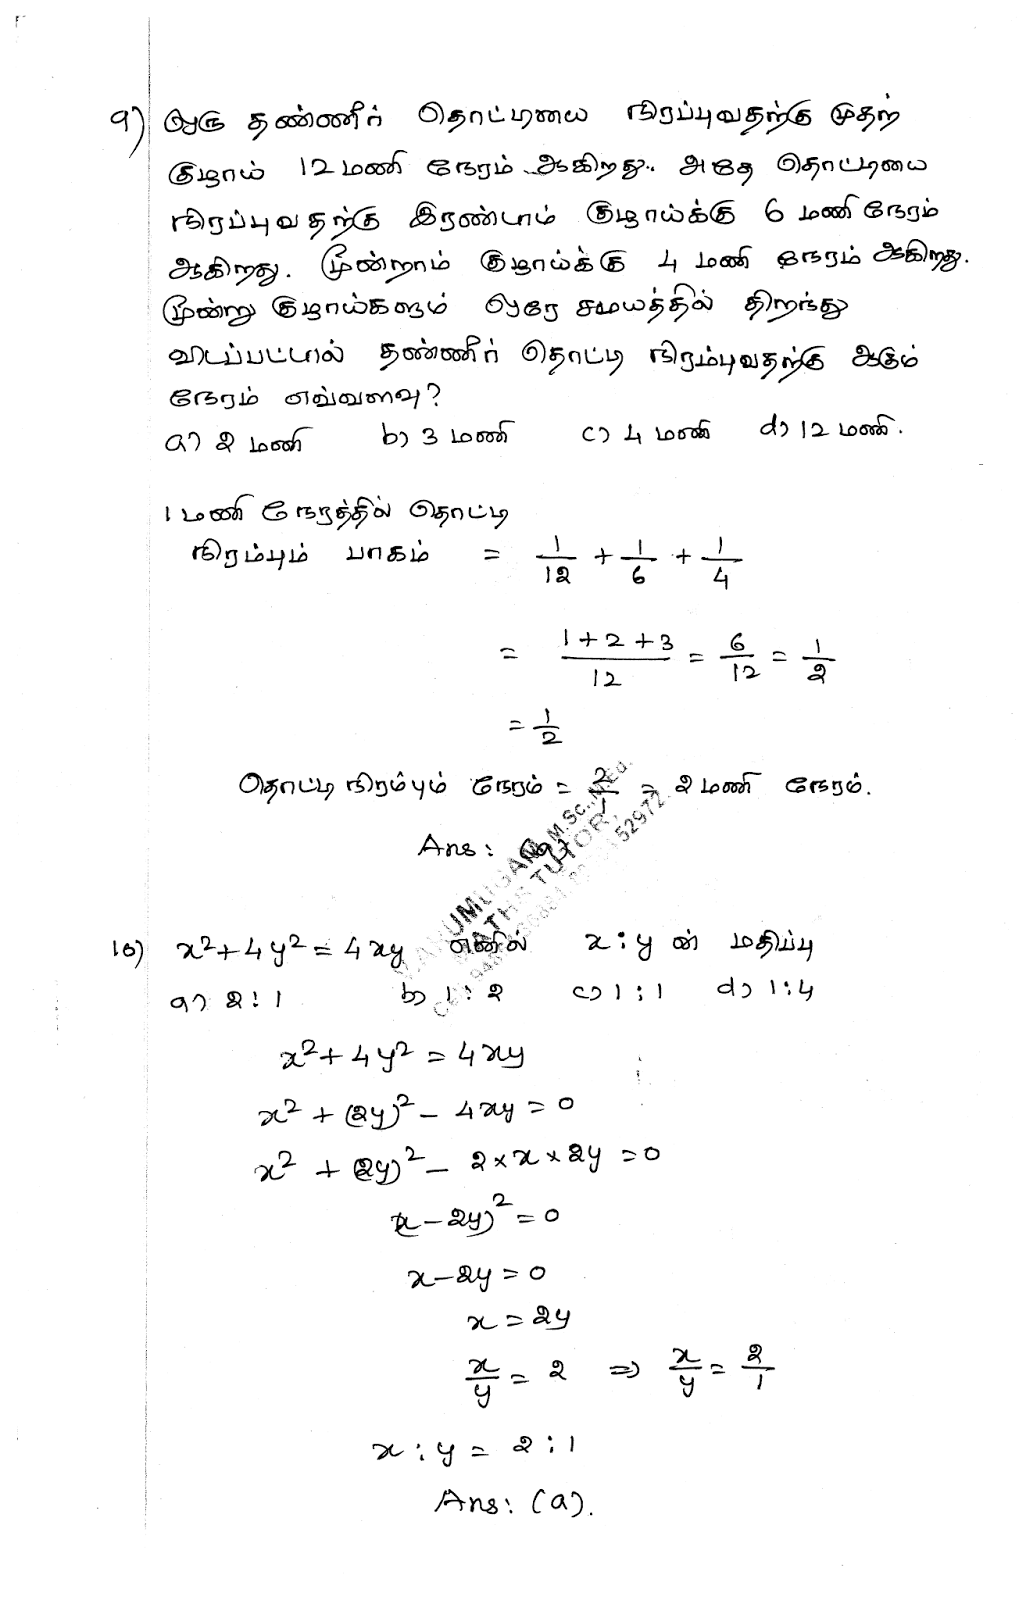 TNPSC - GROUP2 NON INTERVIEW - 2016 EXAM (DATE: 24.1.2016) QUESTIONS - 4